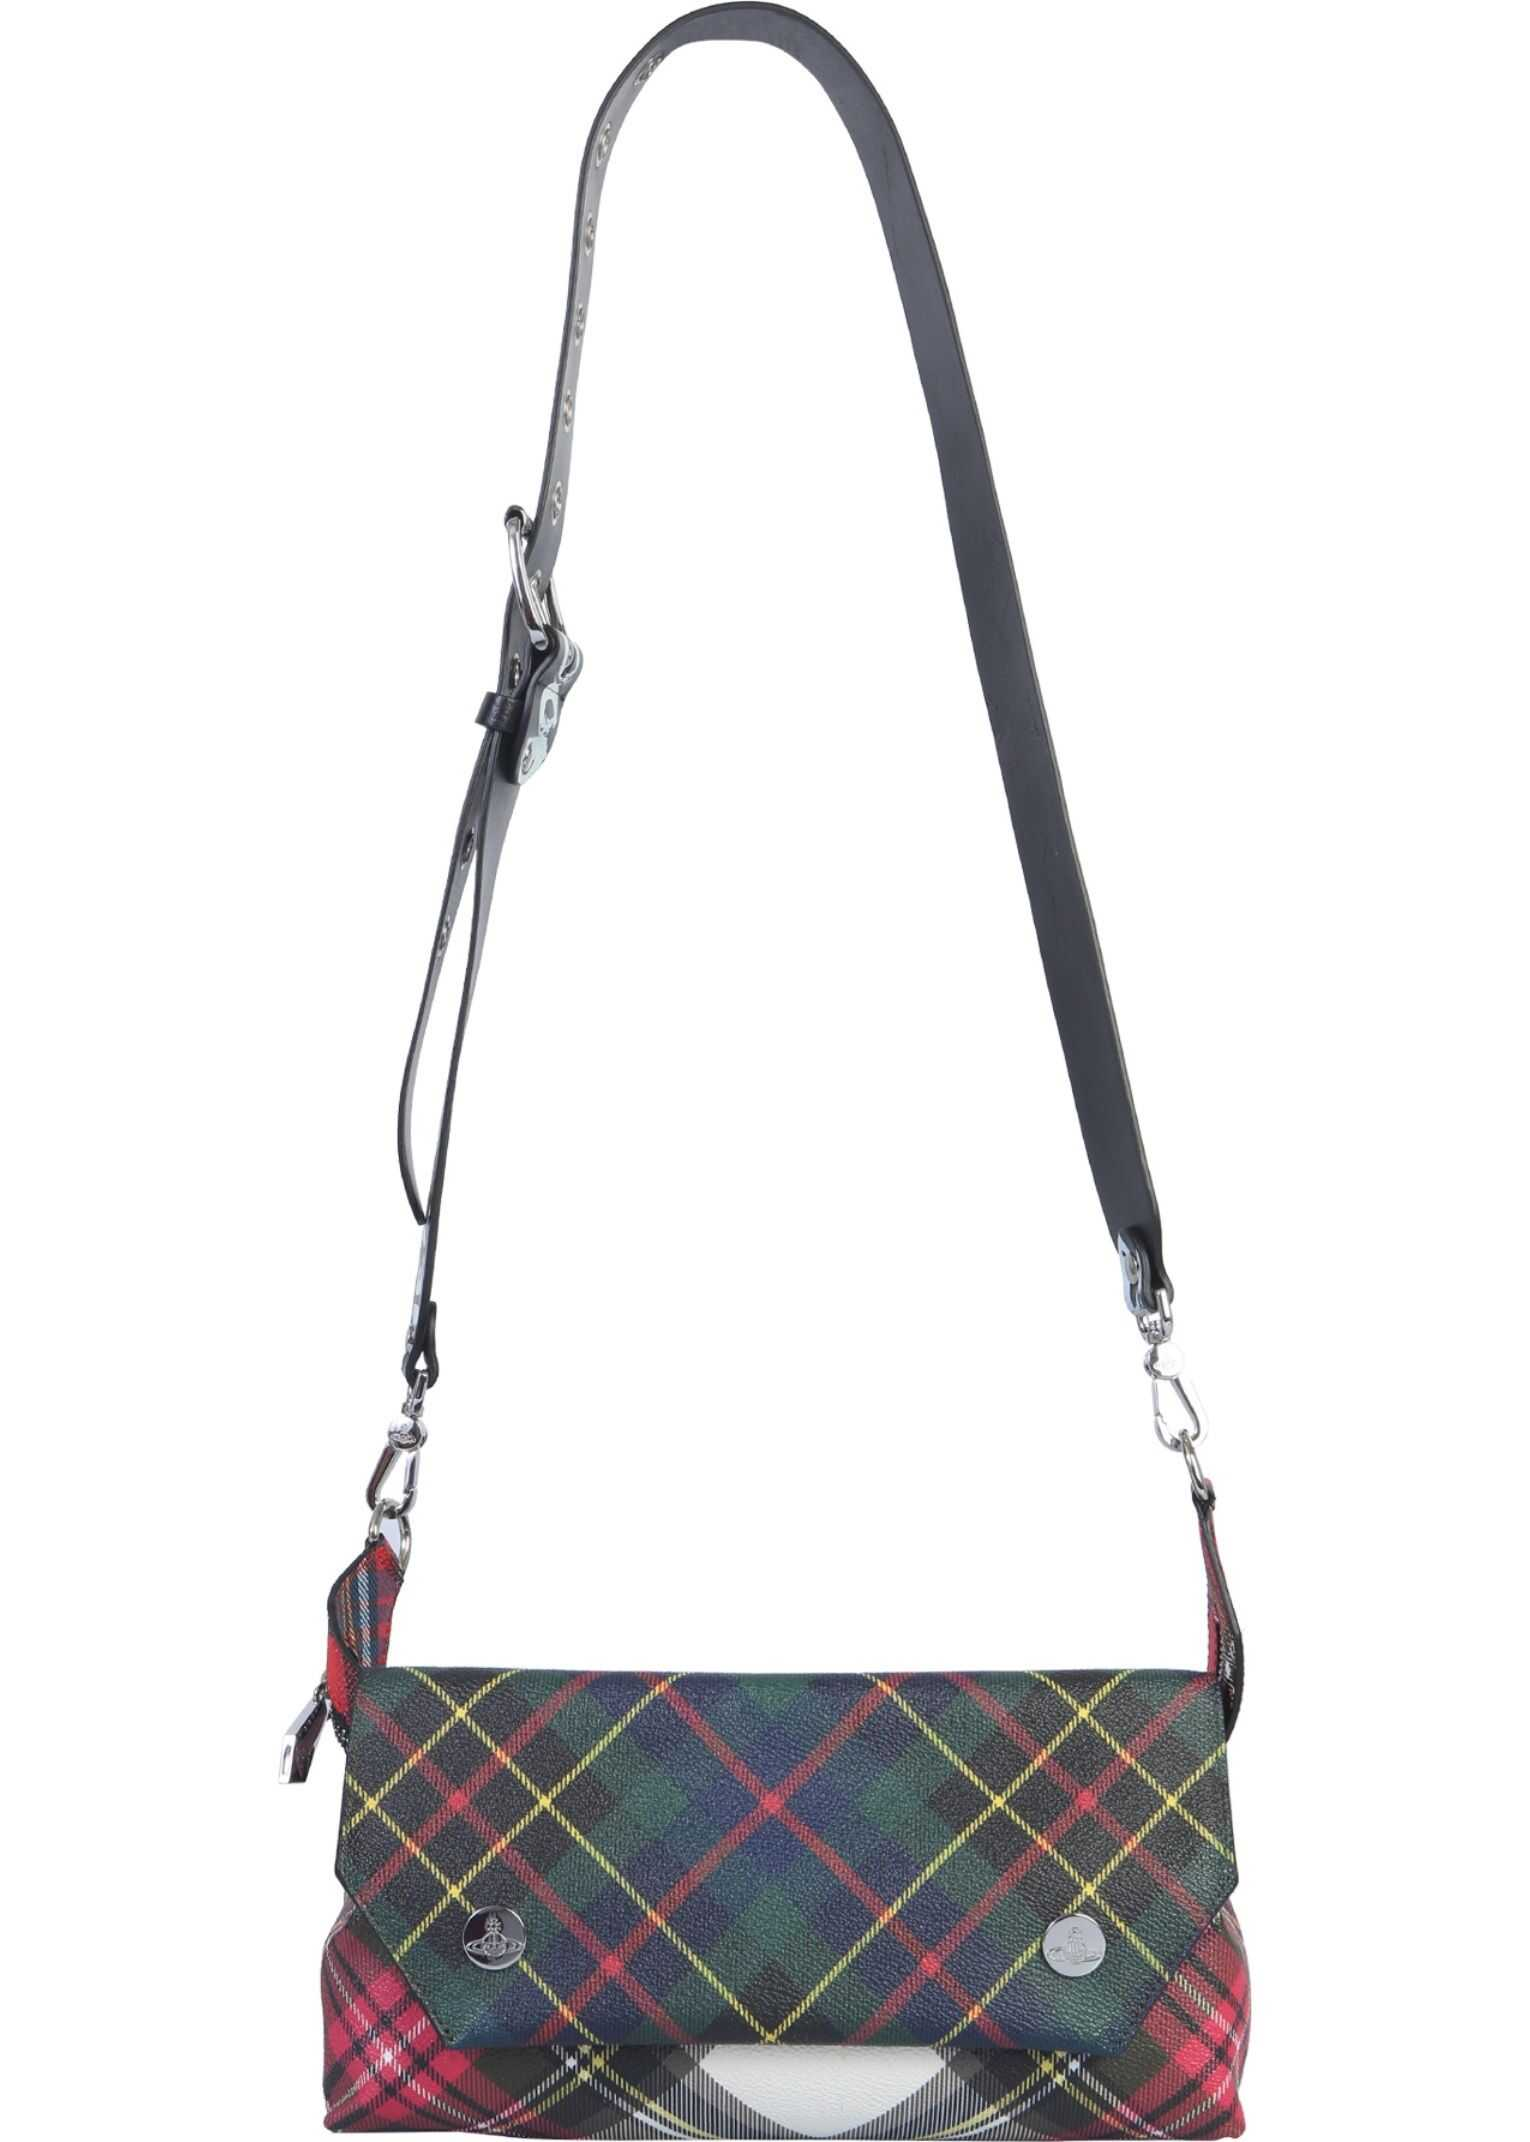 Vivienne Westwood Small Edie Shoulder Bag MULTICOLOUR